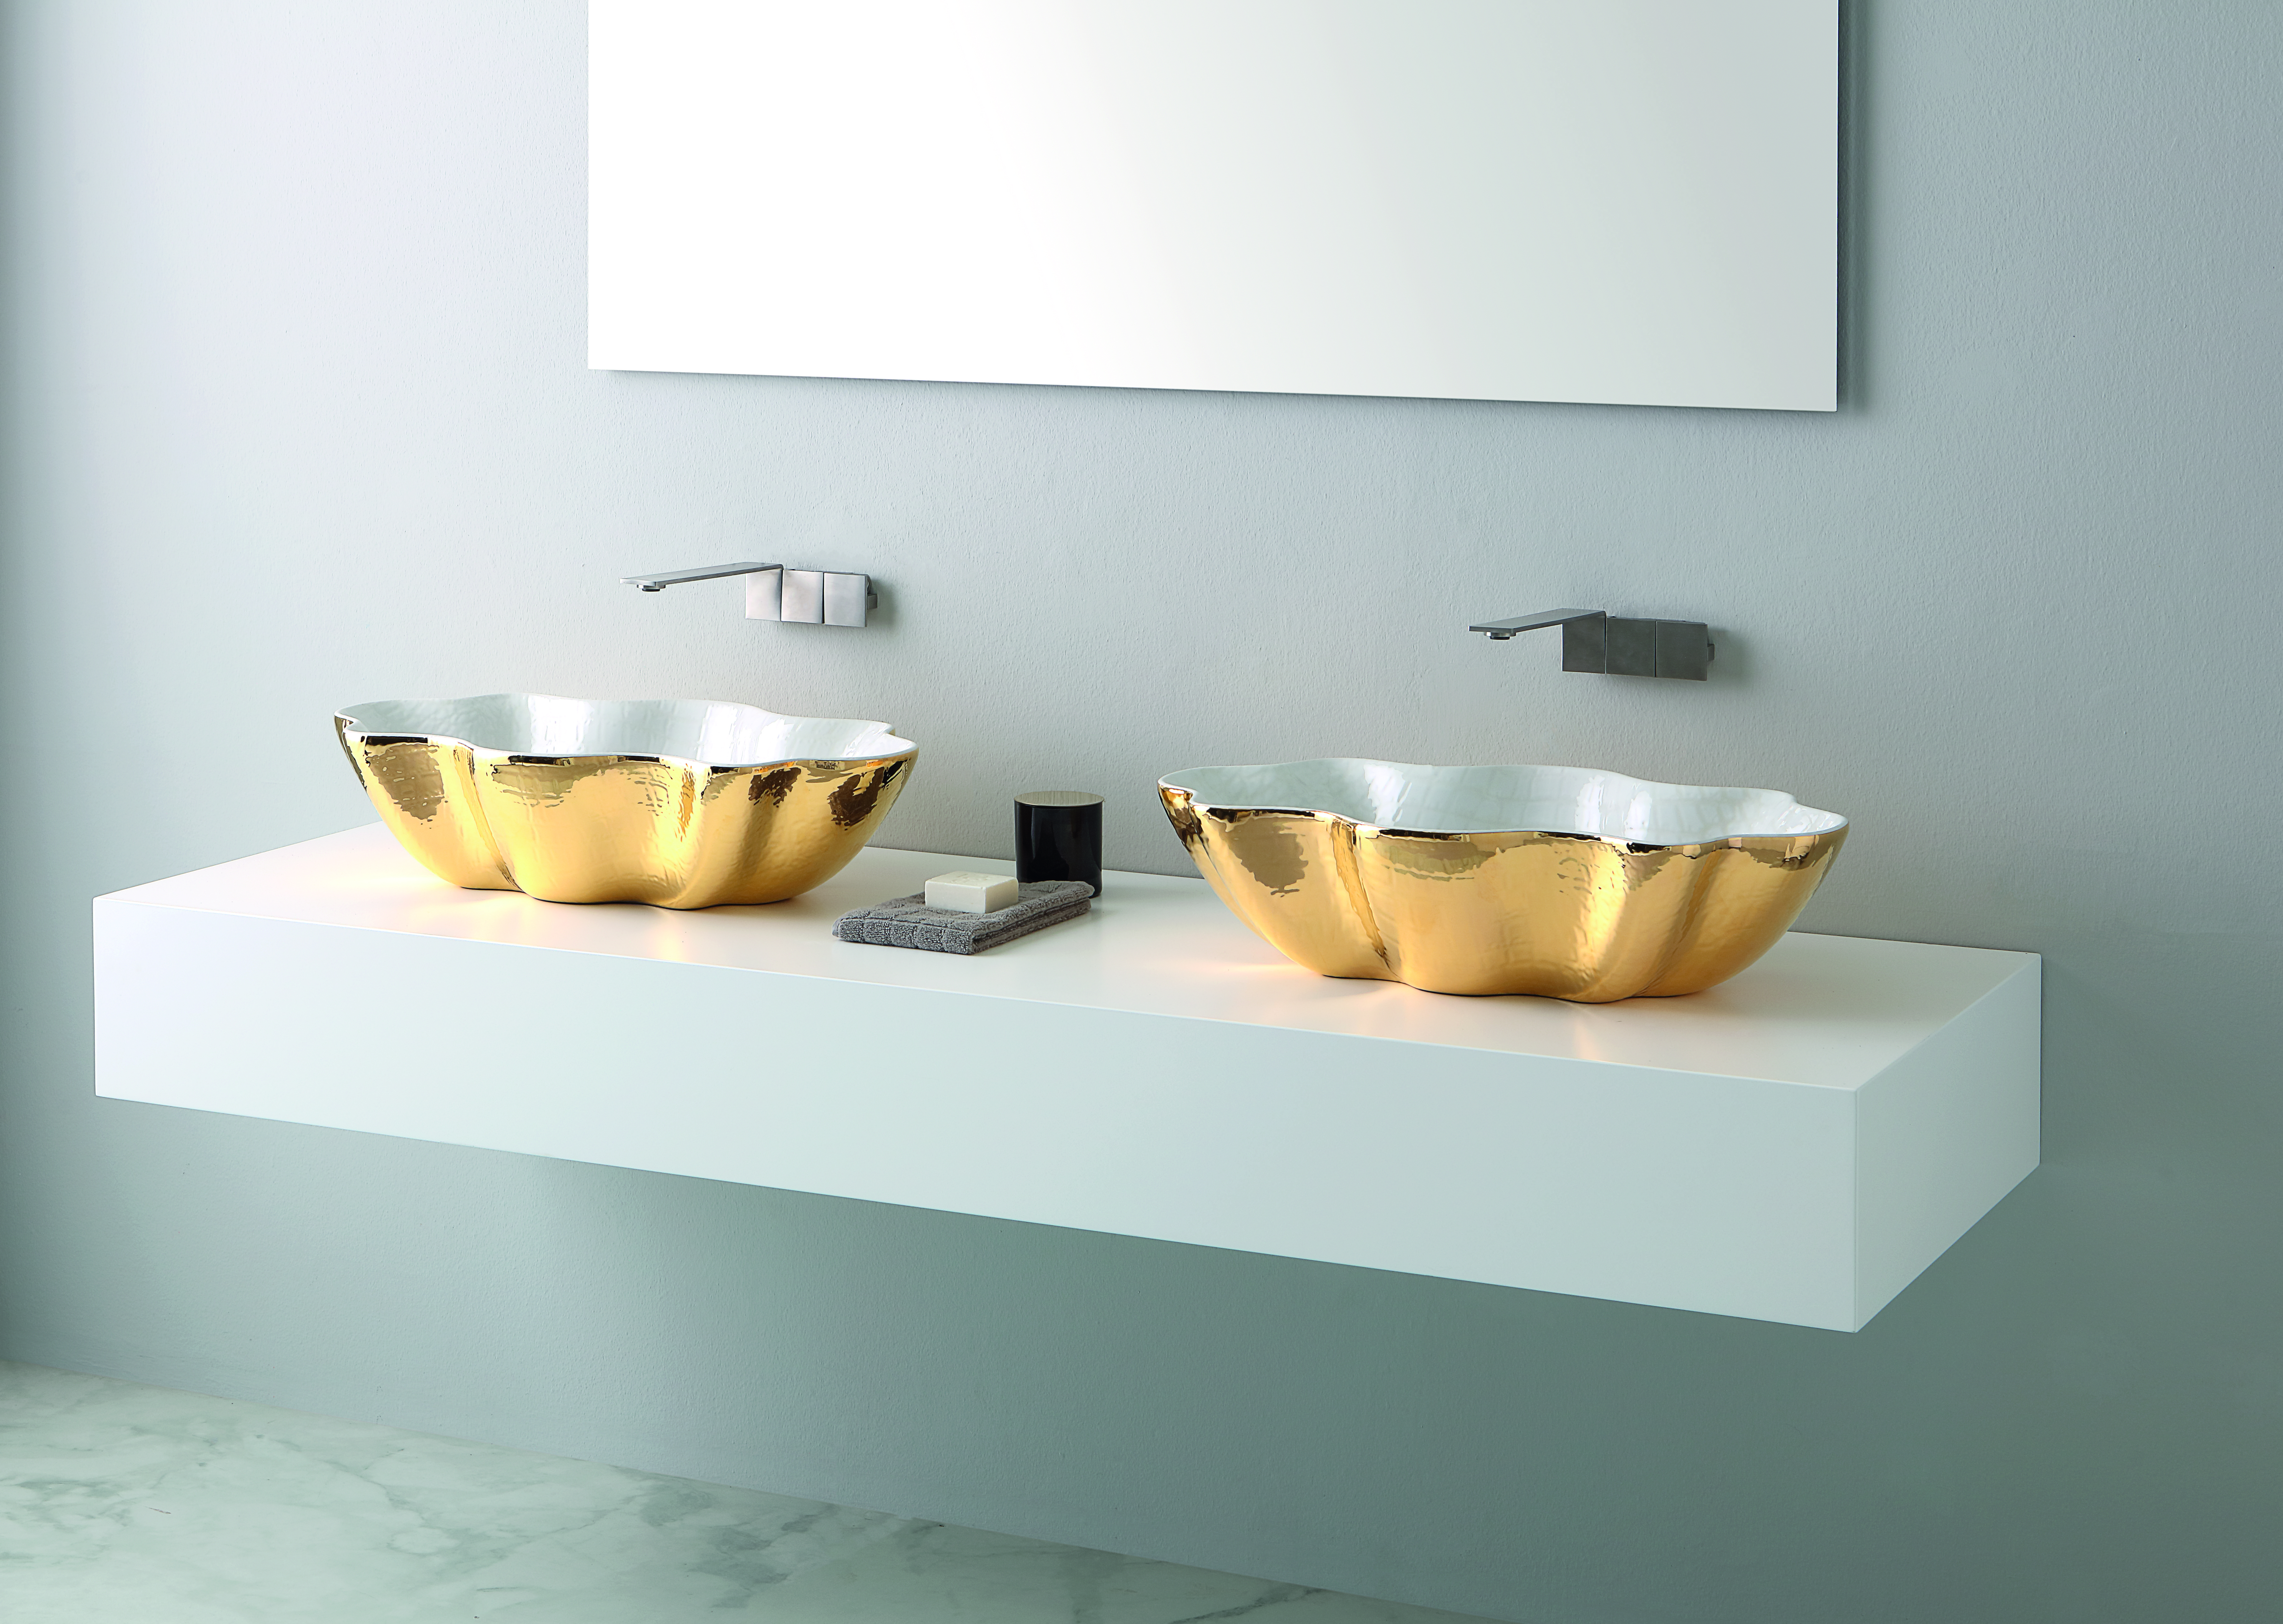 seastar-washbasin-extraluxury-white-and-gold